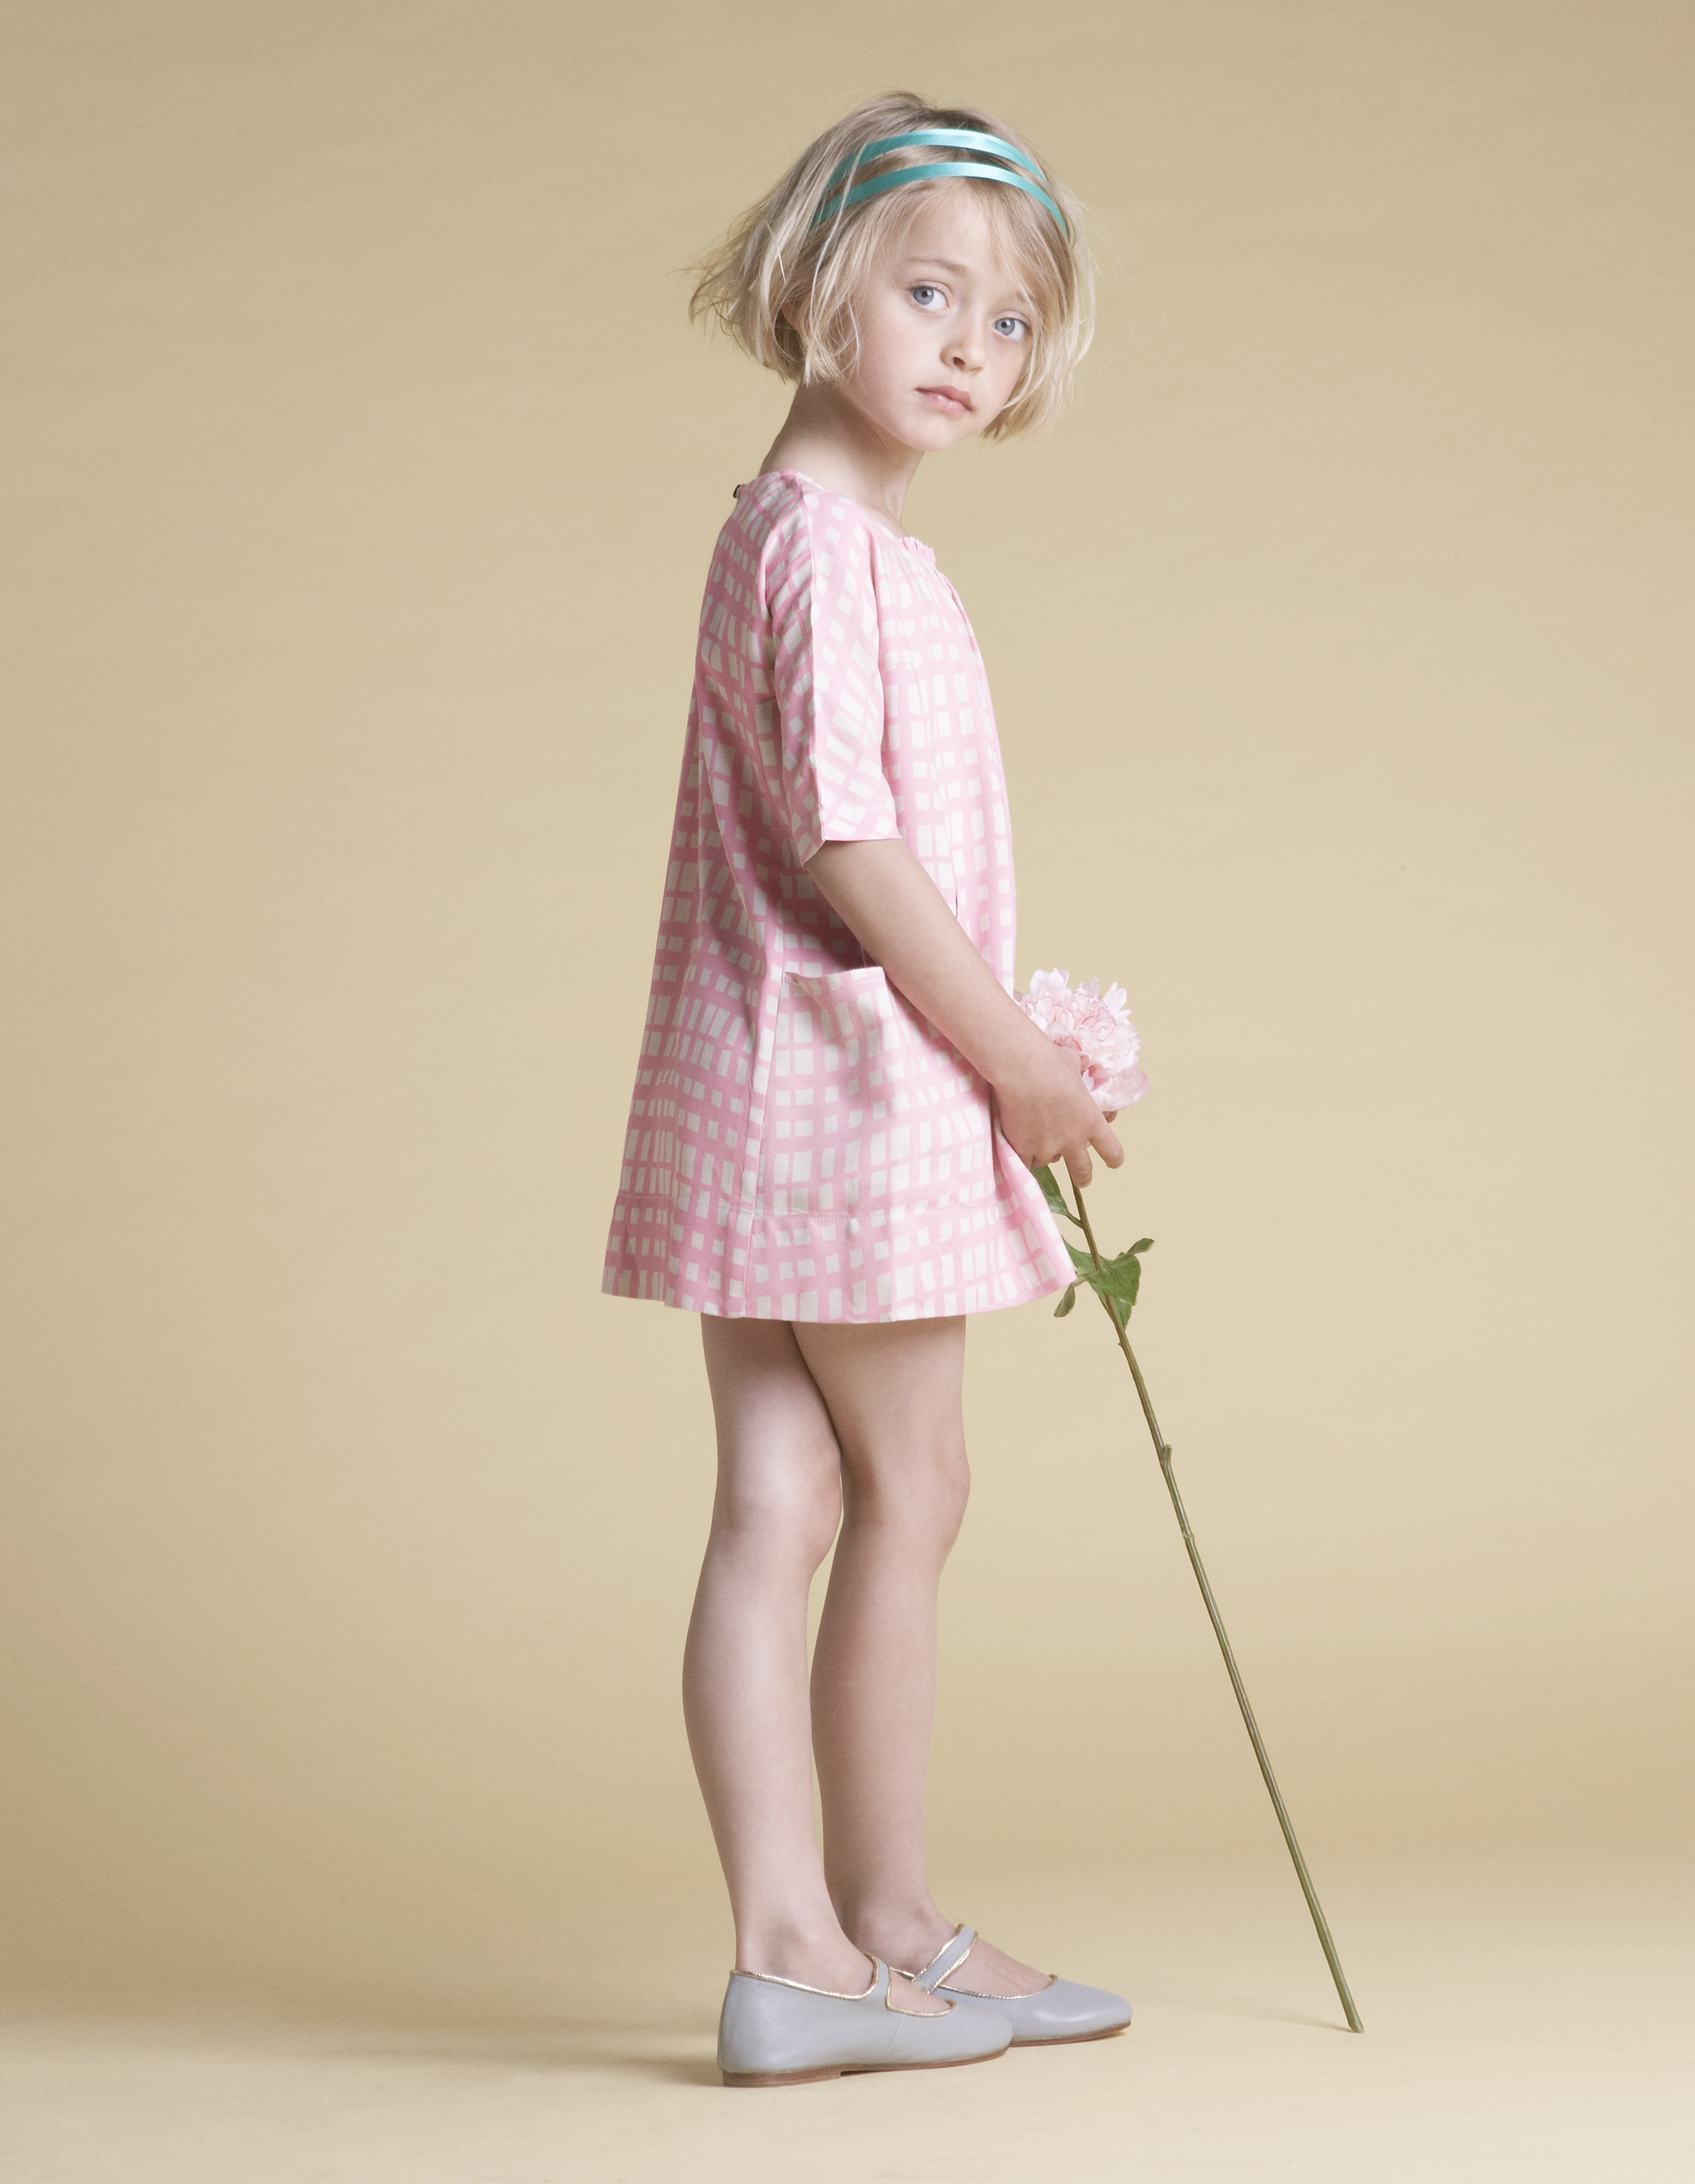 Childrens fashion by Caramel Baby and Child for spring summer 2010